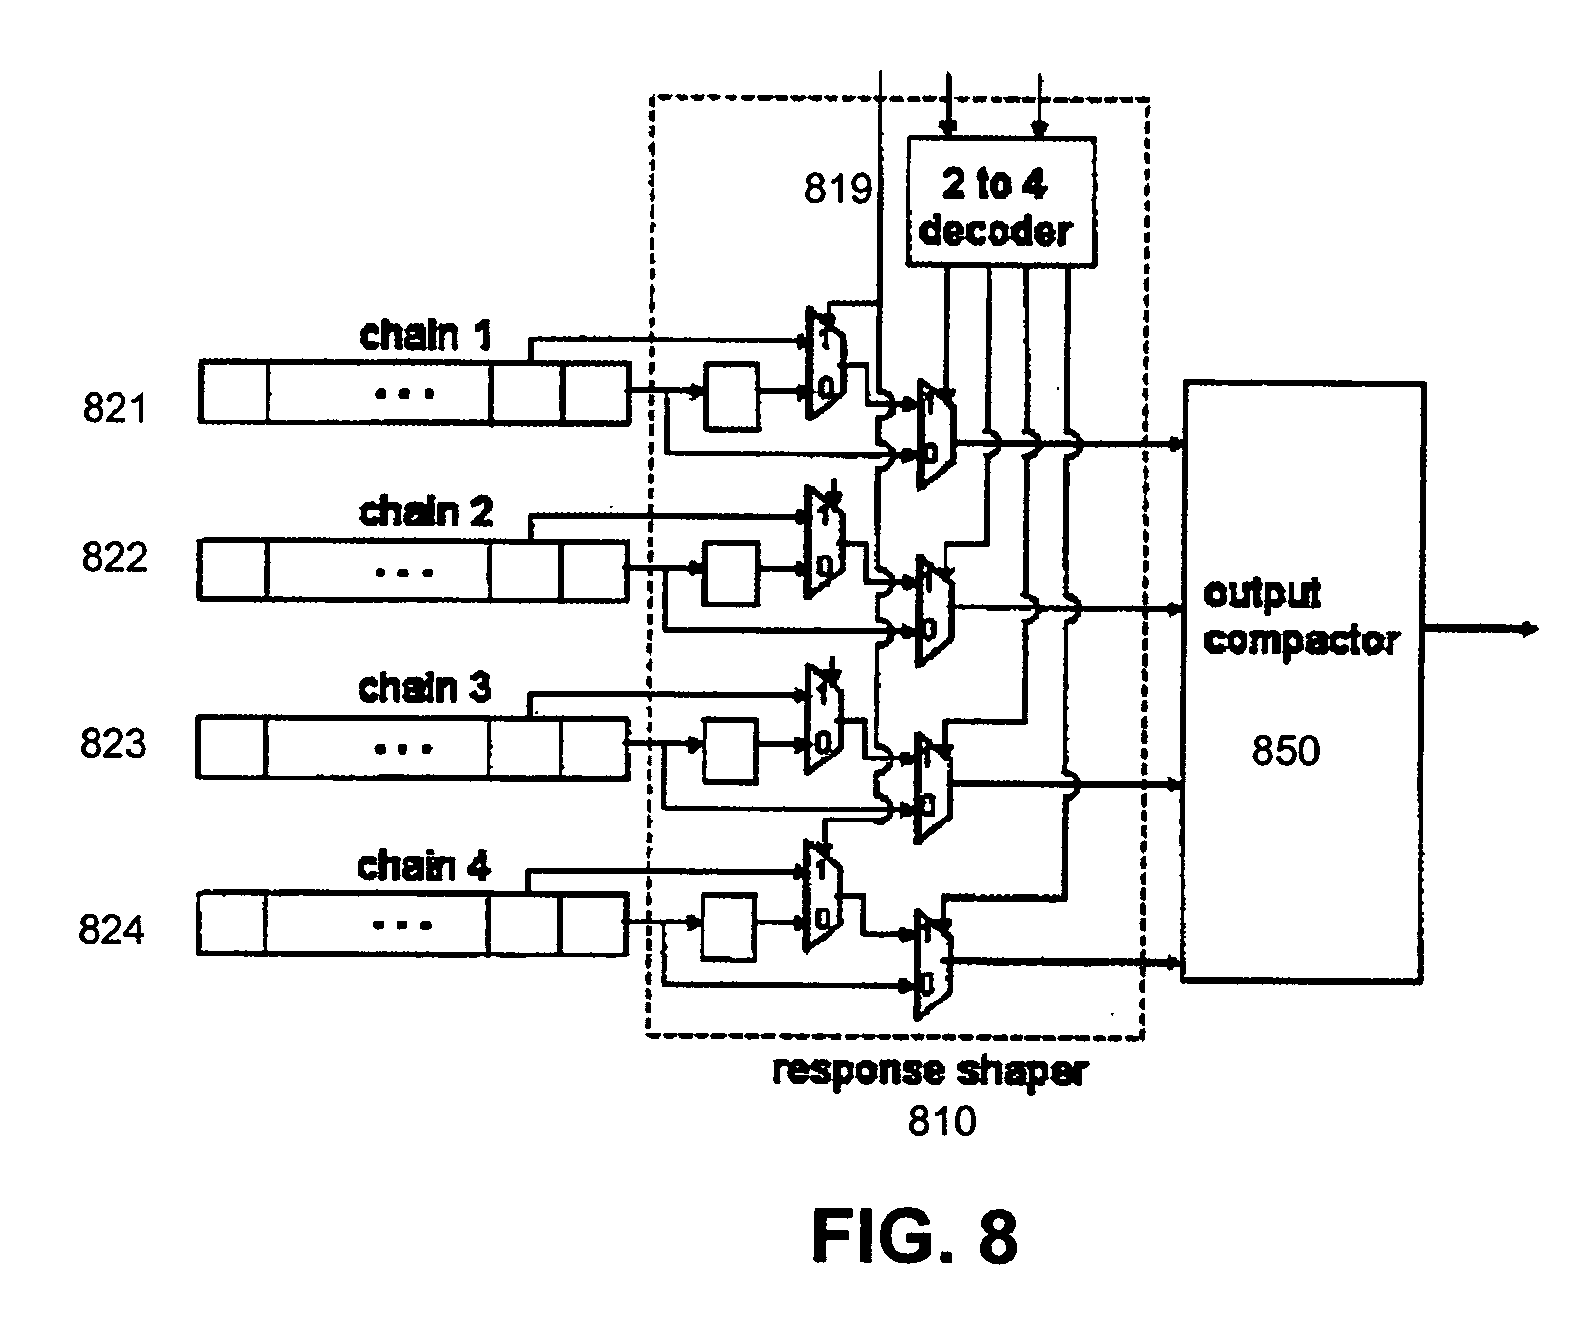 Patent Us20060101316 Test Output Compaction Using Response Shaper Figure 8 4x1 Multiplexer With 2x4 Decoder Selector Block Diagram Drawing